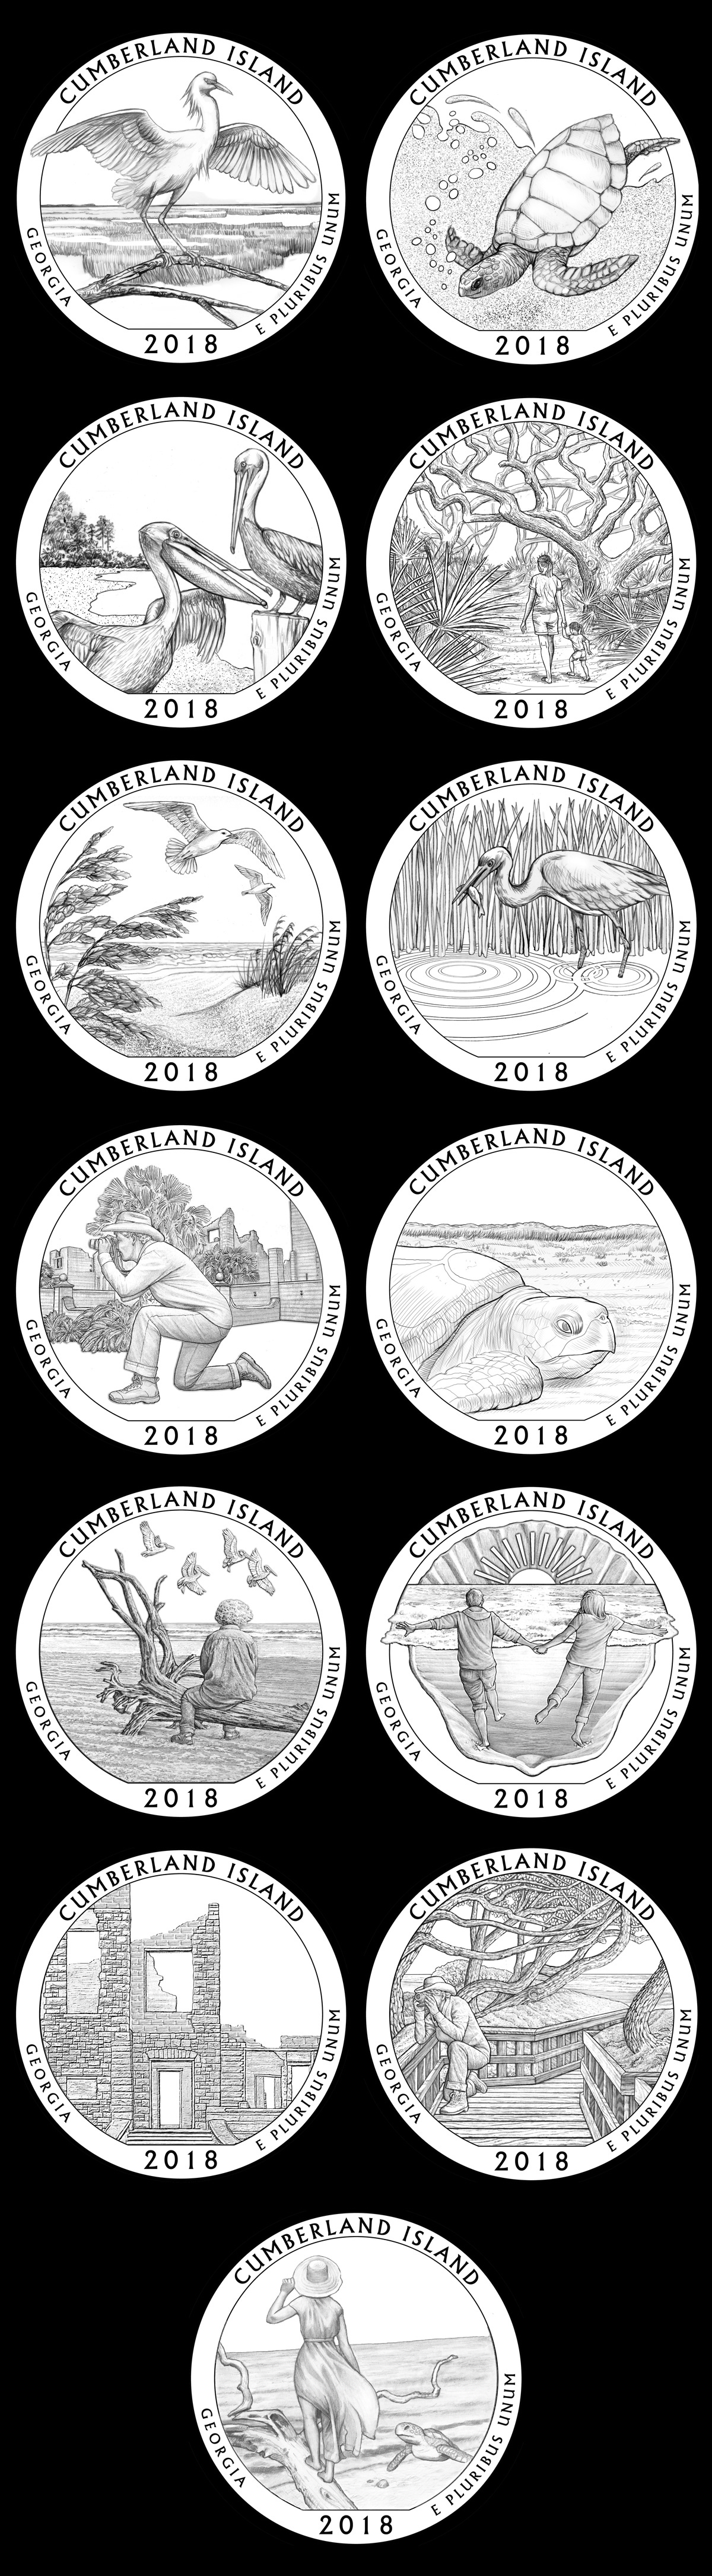 Candidate designs for new 2018 Cumberland Island National Seashore Quarter